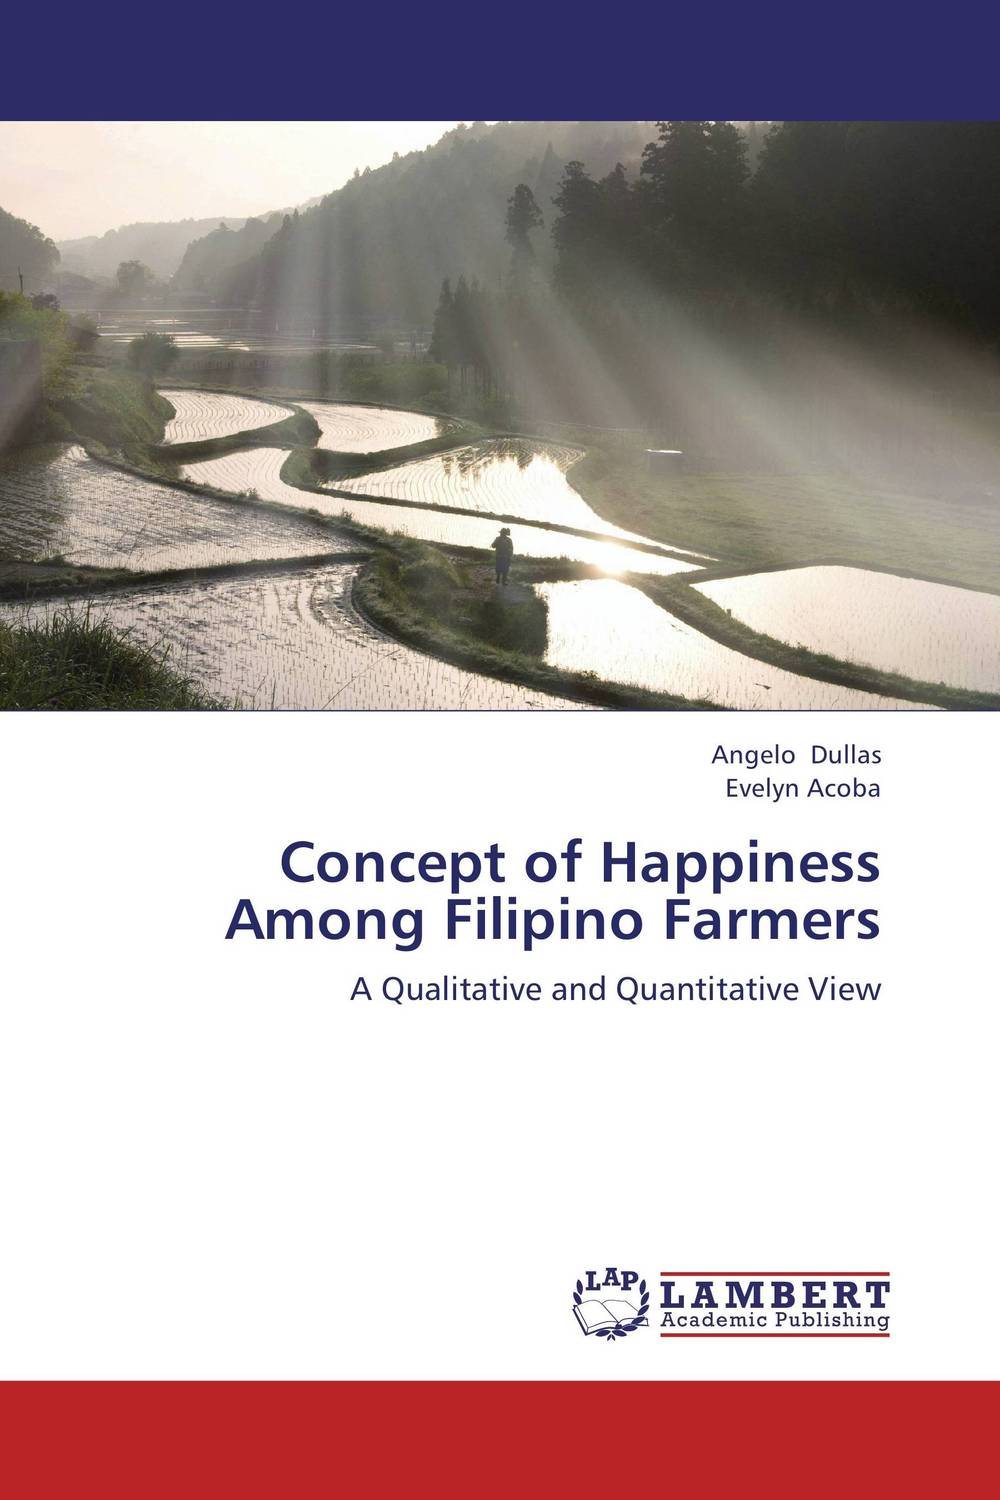 Concept of Happiness Among Filipino Farmers marvin tolentino and angelo dullas subjective well being and farming experiences of filipino children